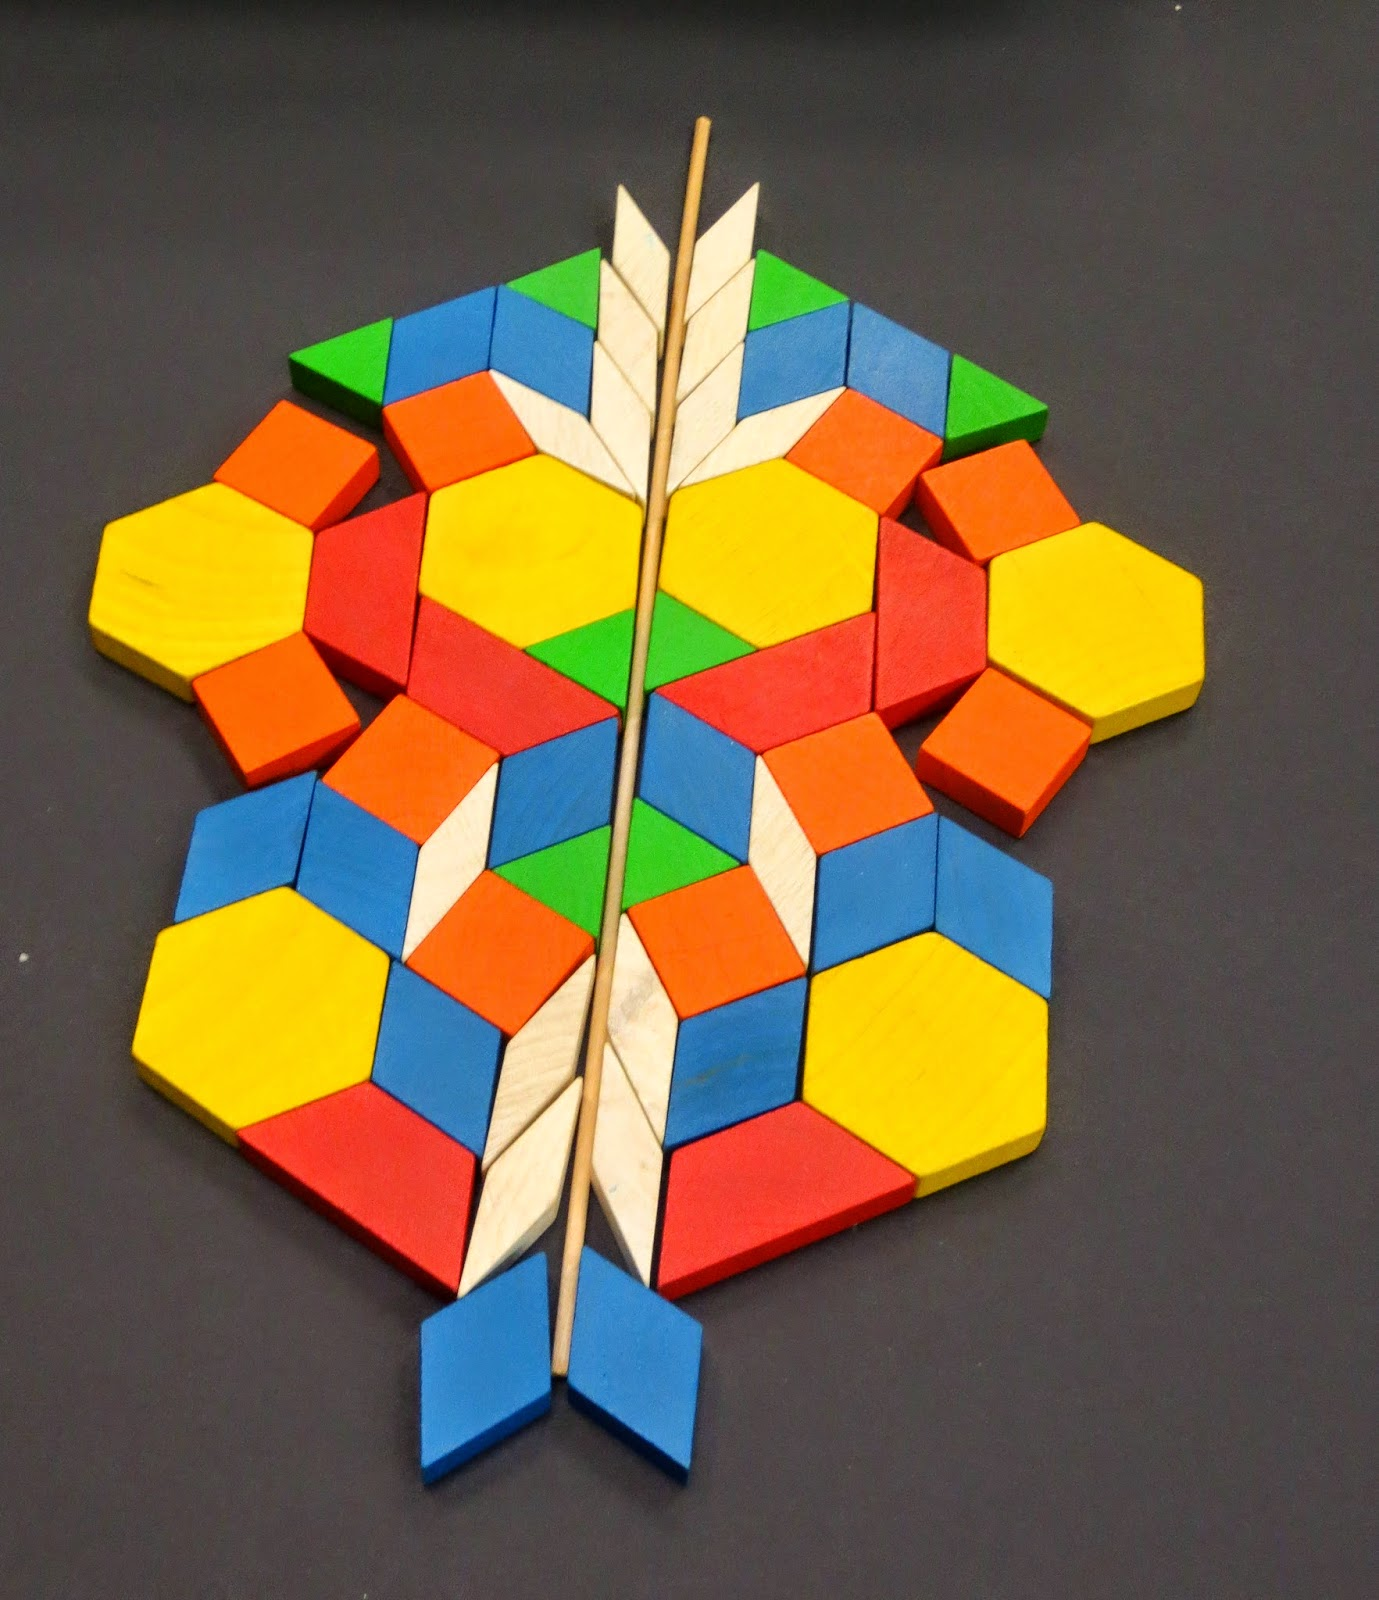 Symetrical Designs abington friends lower school news and notes: looking at symmetry